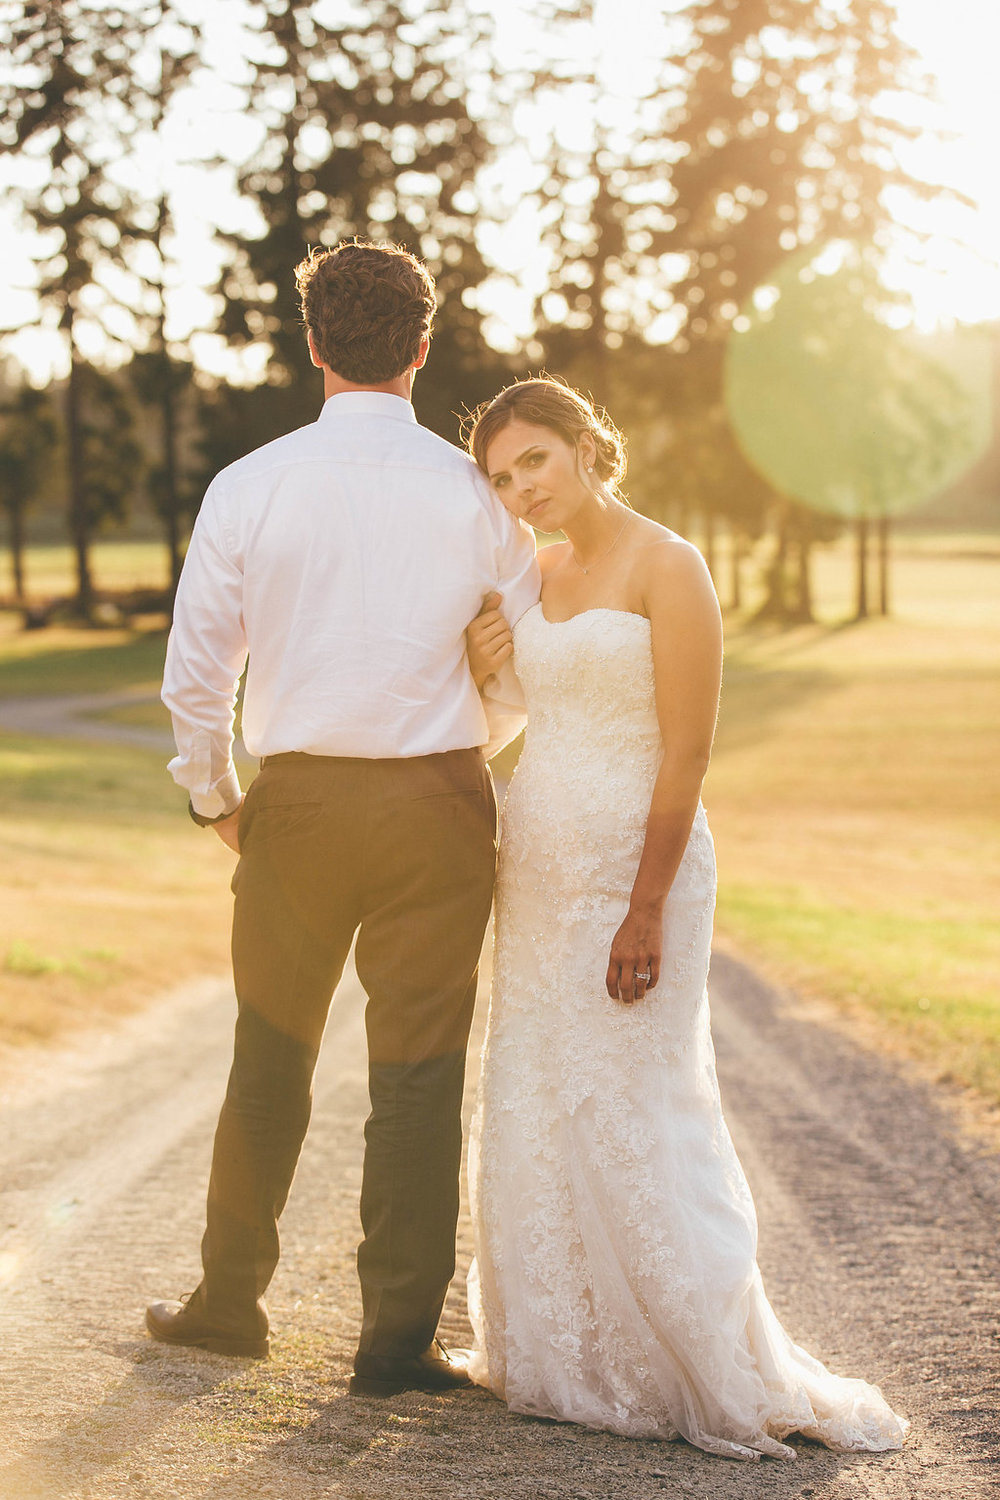 Erin+Tyson_The_Kelley_Farm_Wedding_by_Adina_Preston_Weddings_357.JPG